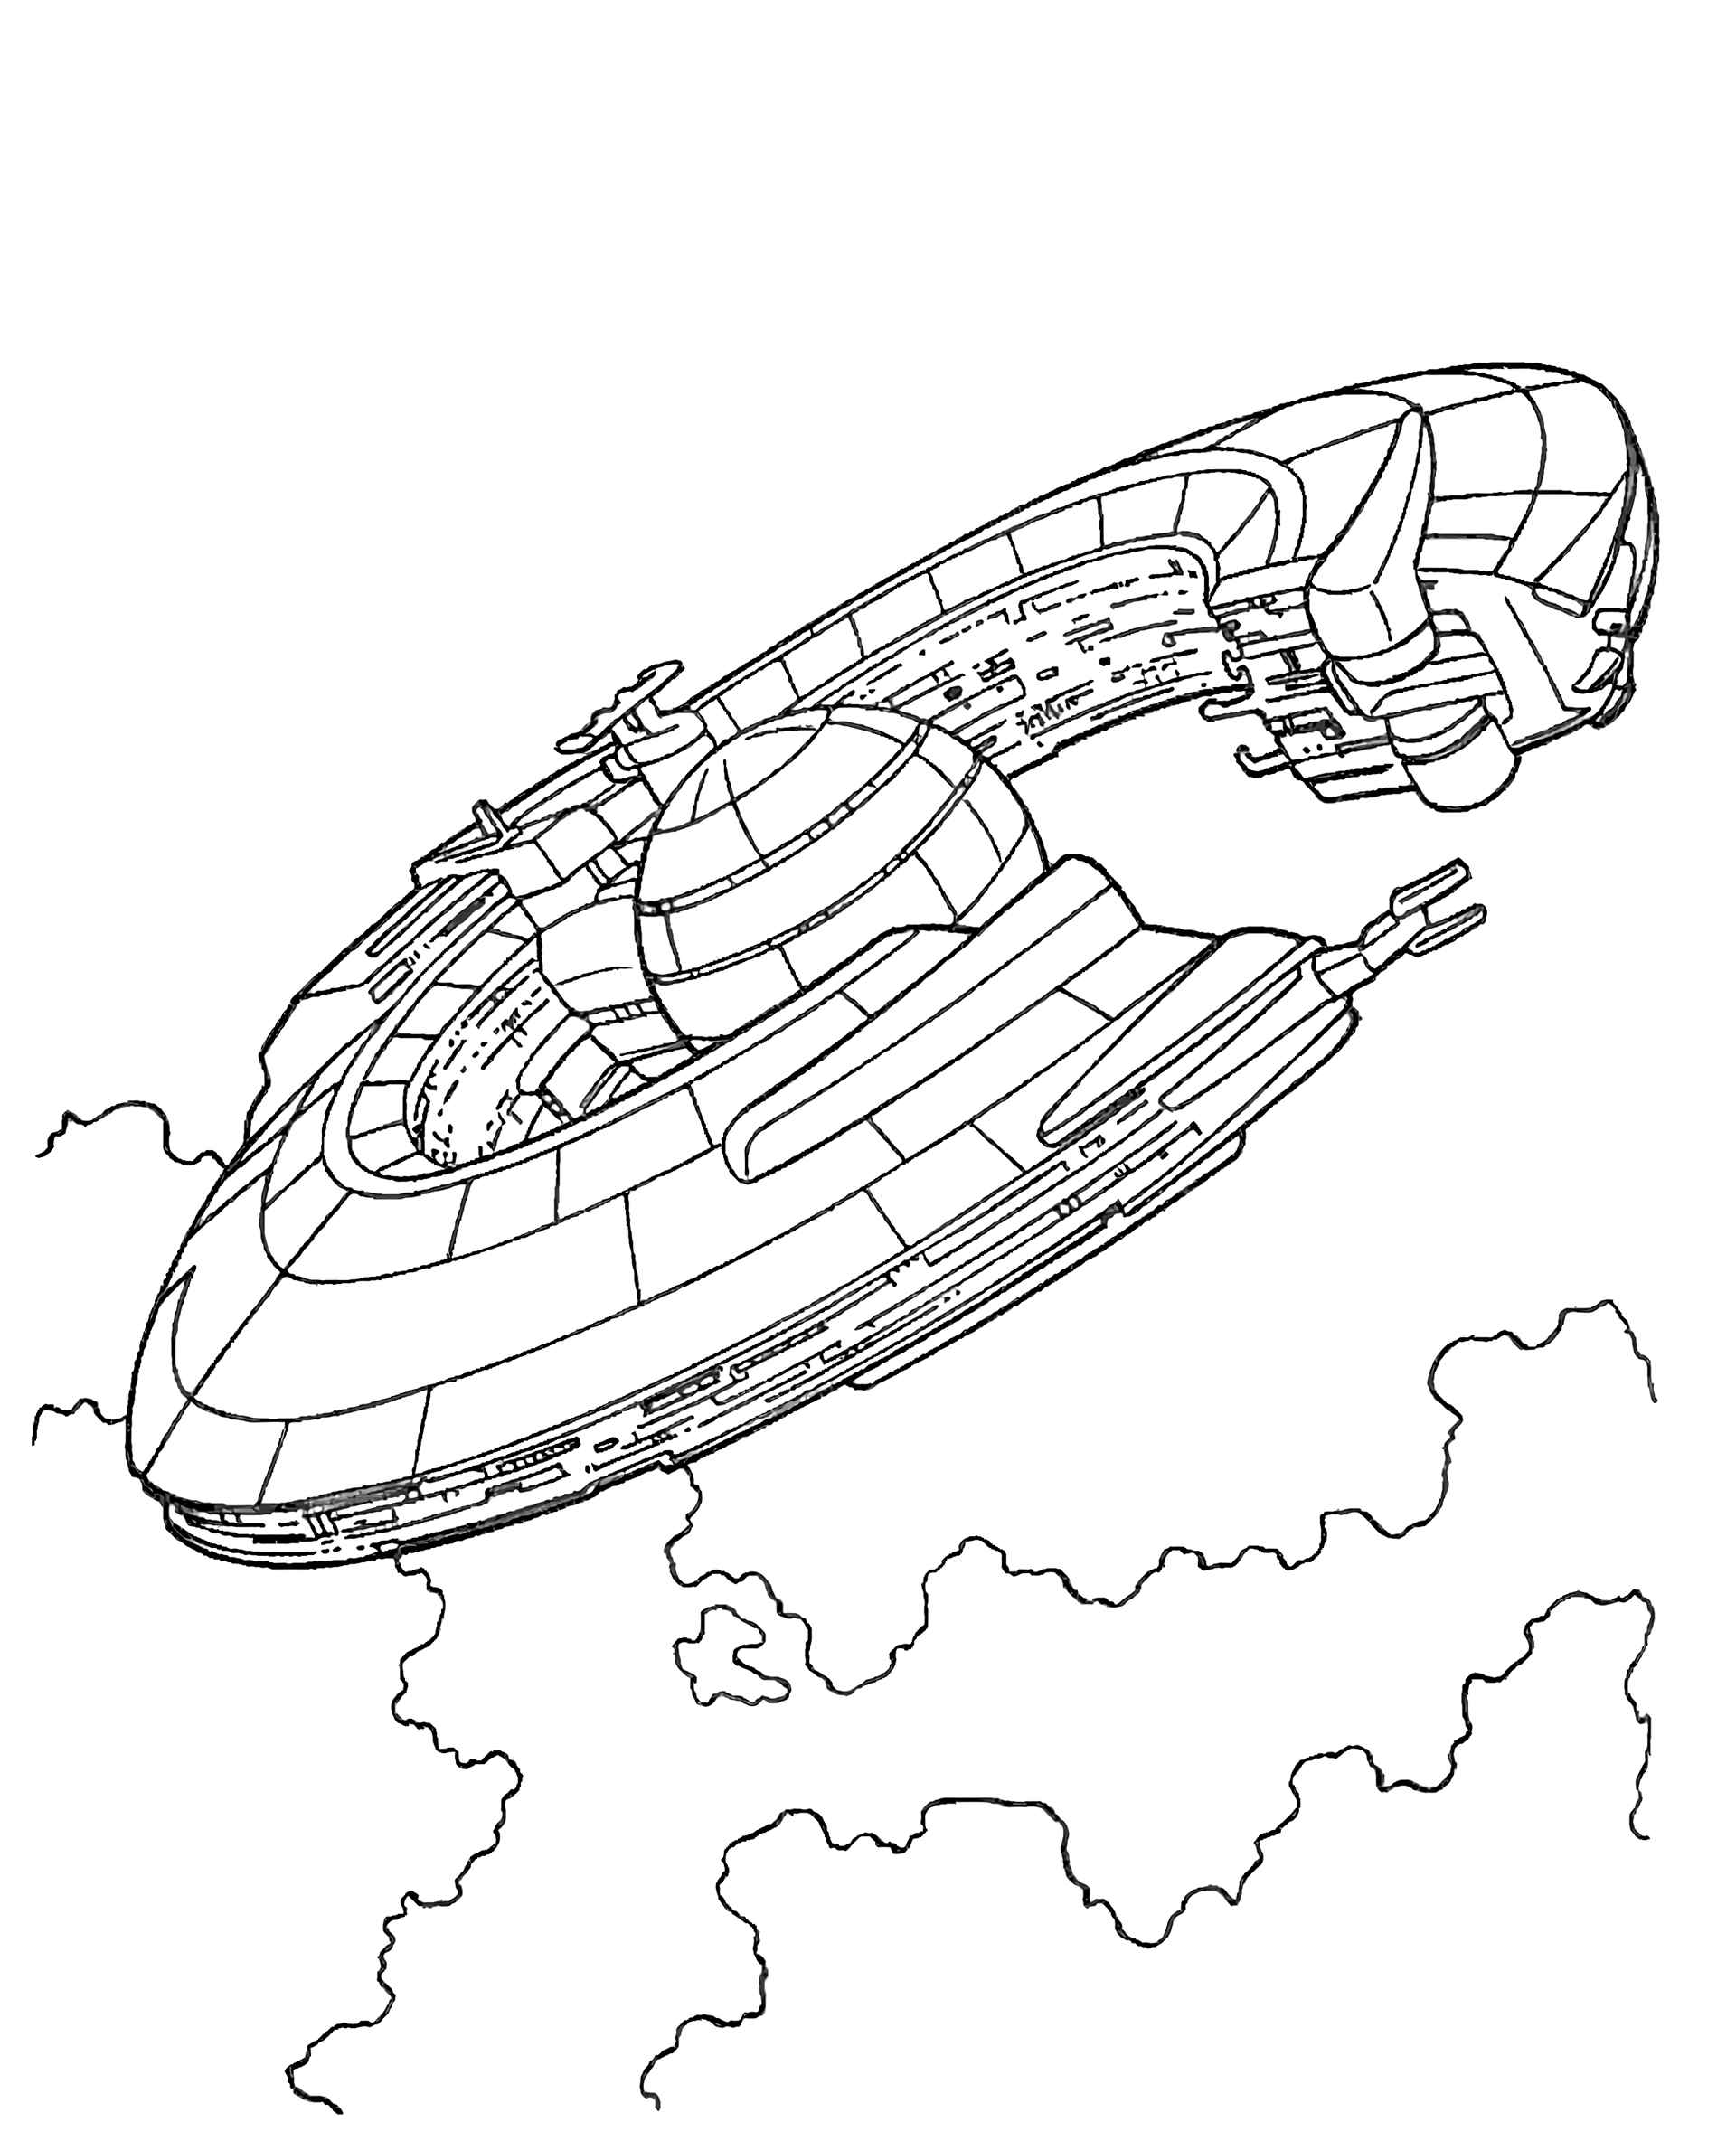 Spaceship From Star Wars Coloring Page